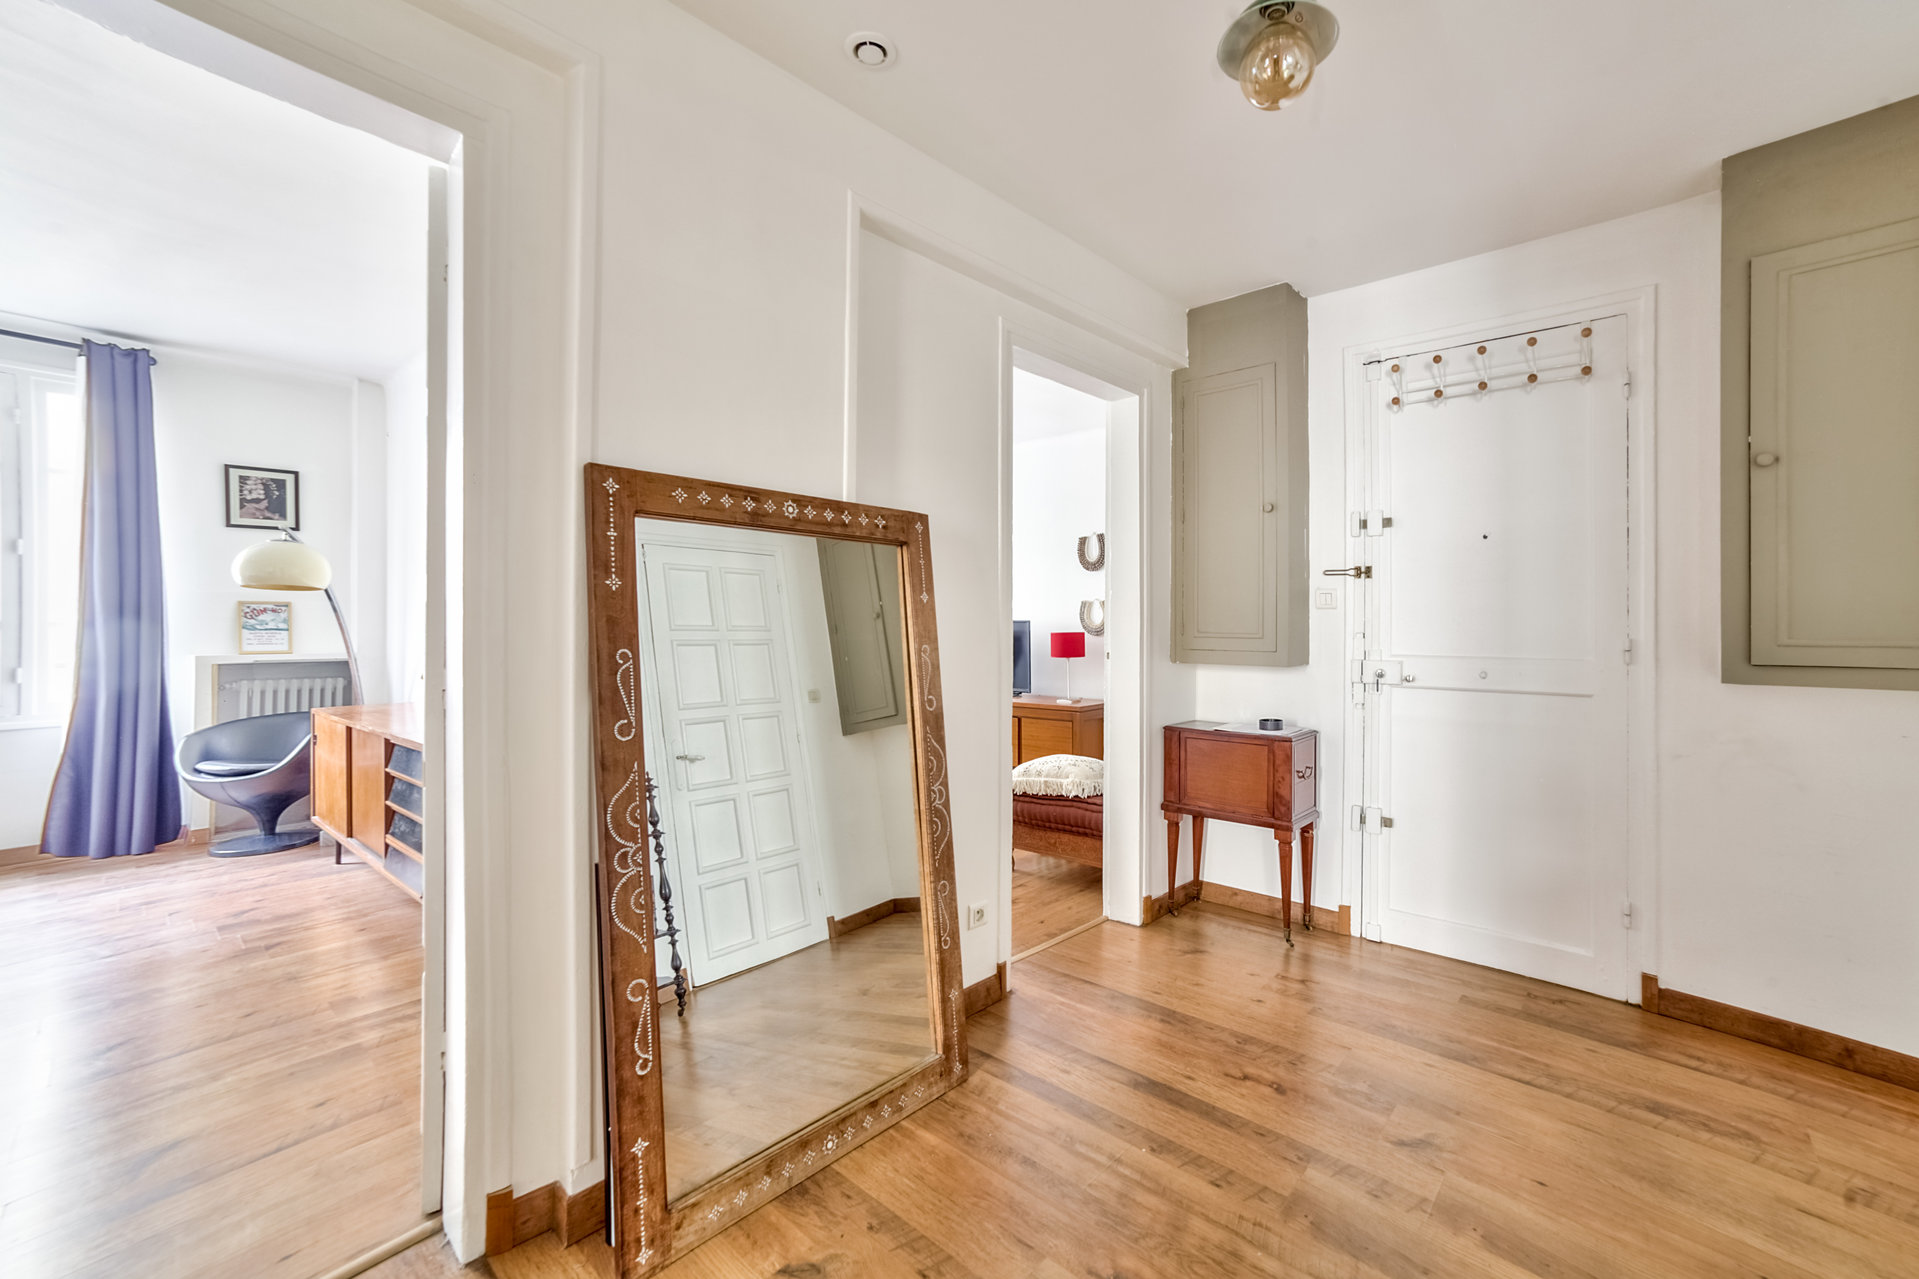 One bedroom apartment for sale in Paris